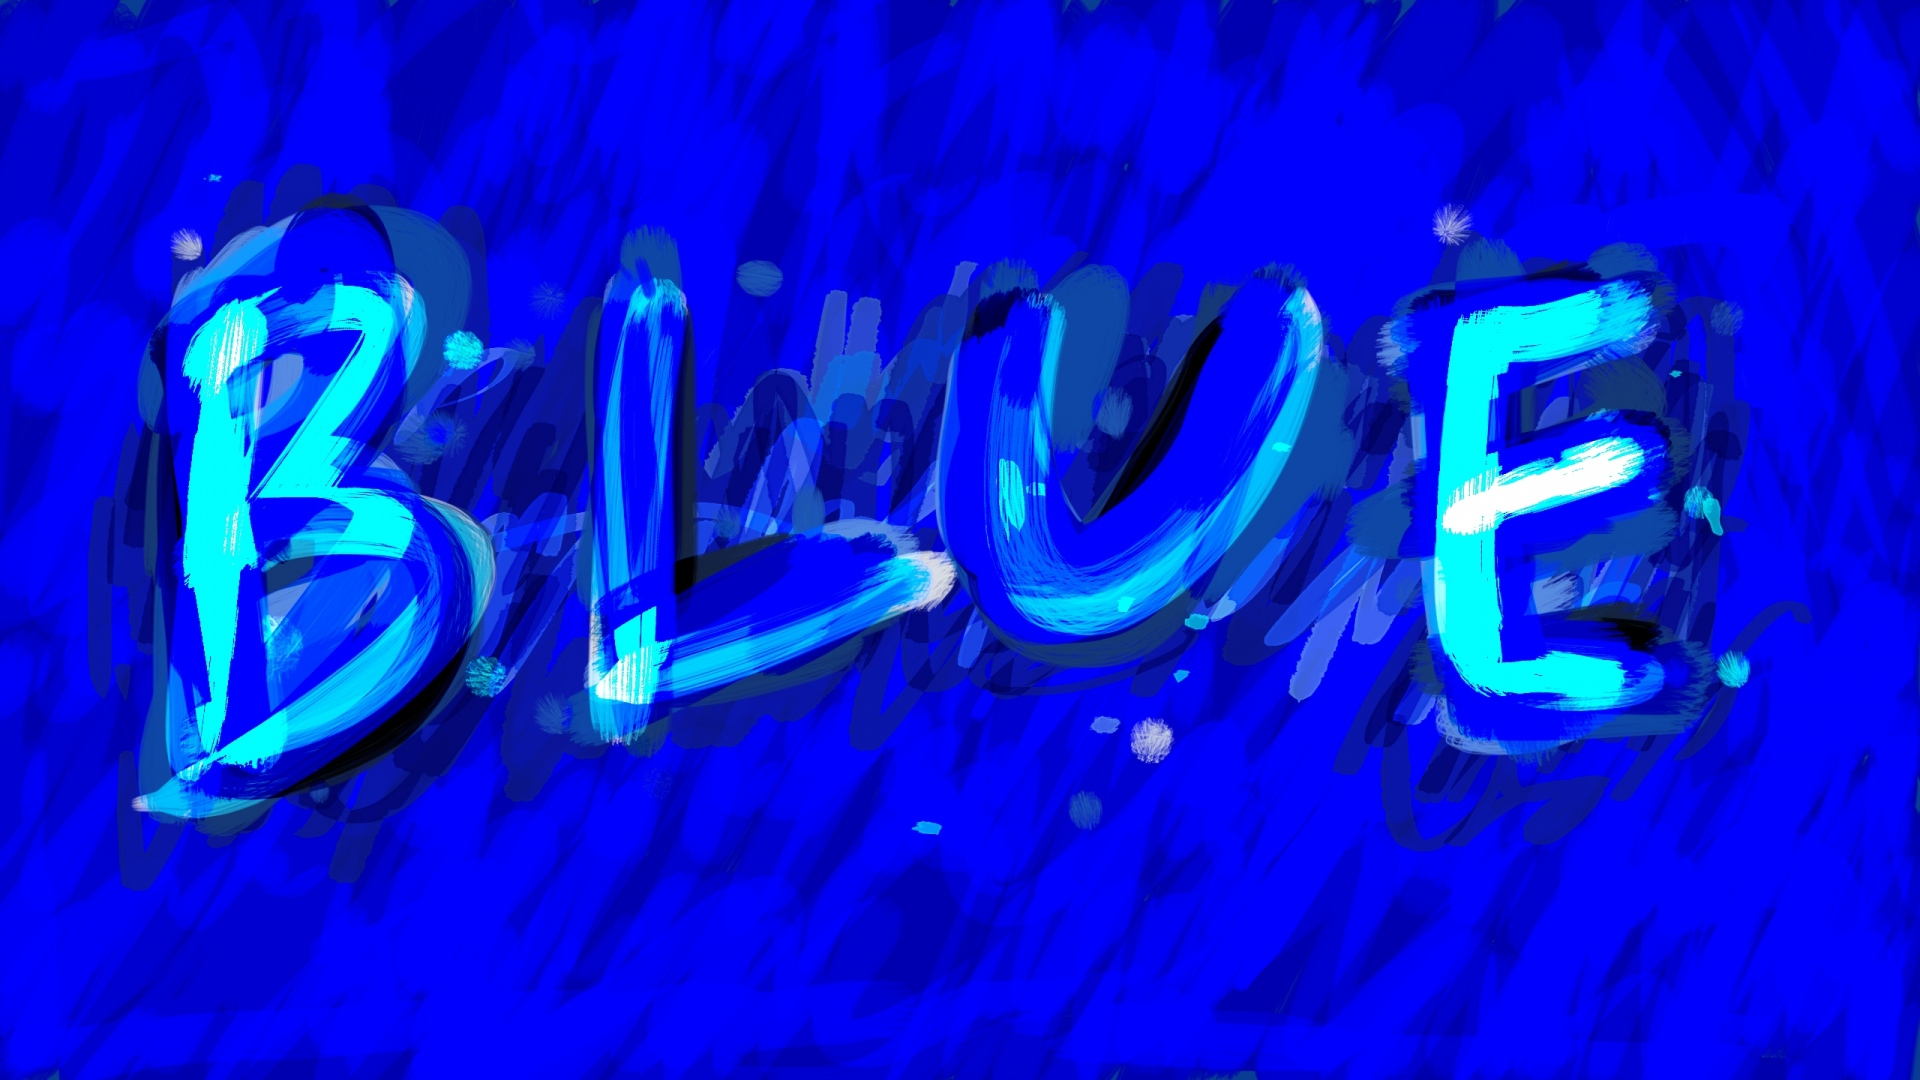 Blue Hd Wallpapers 1080p: Blue Hd Wallpapers